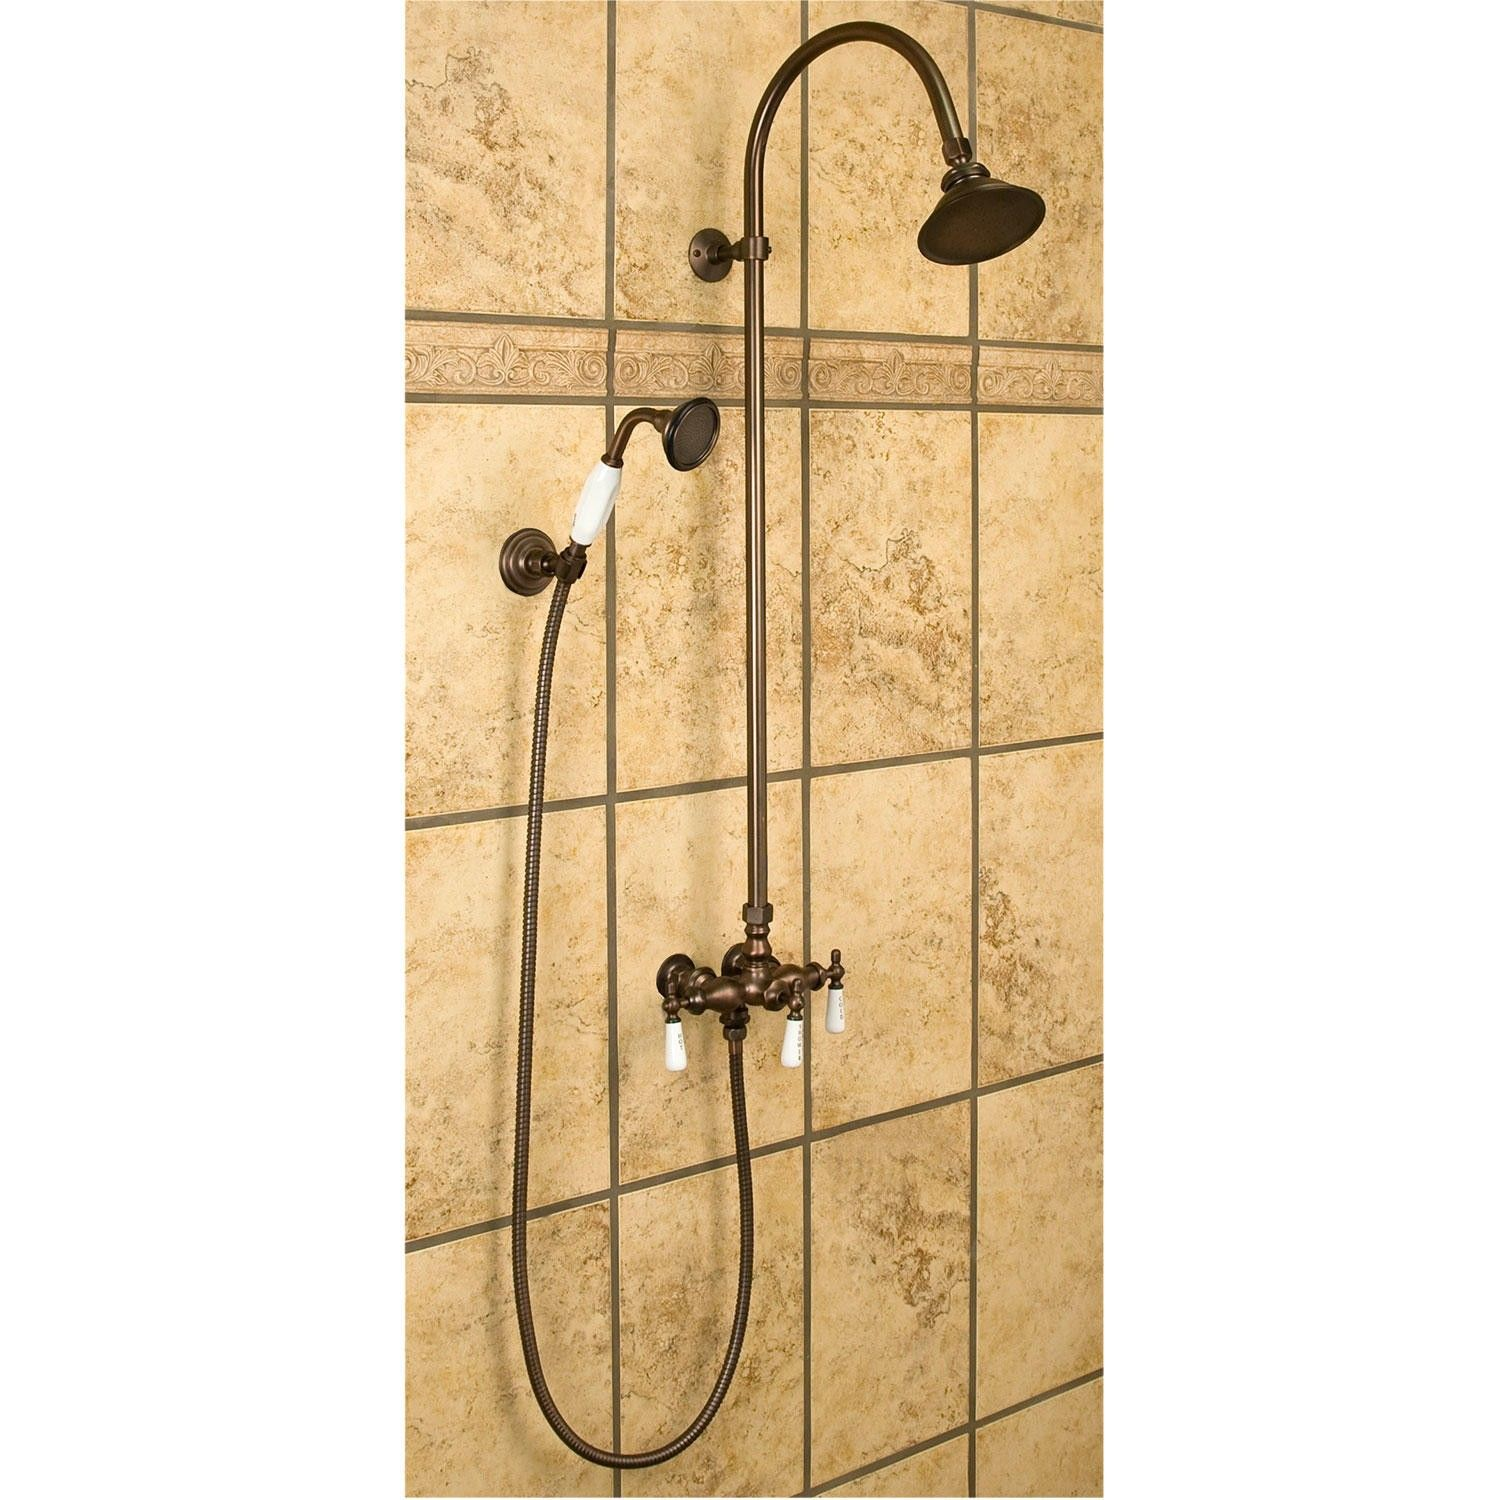 Exposed Pipe Shower With Hand Shower | Pipes, Bath and Shower bathroom